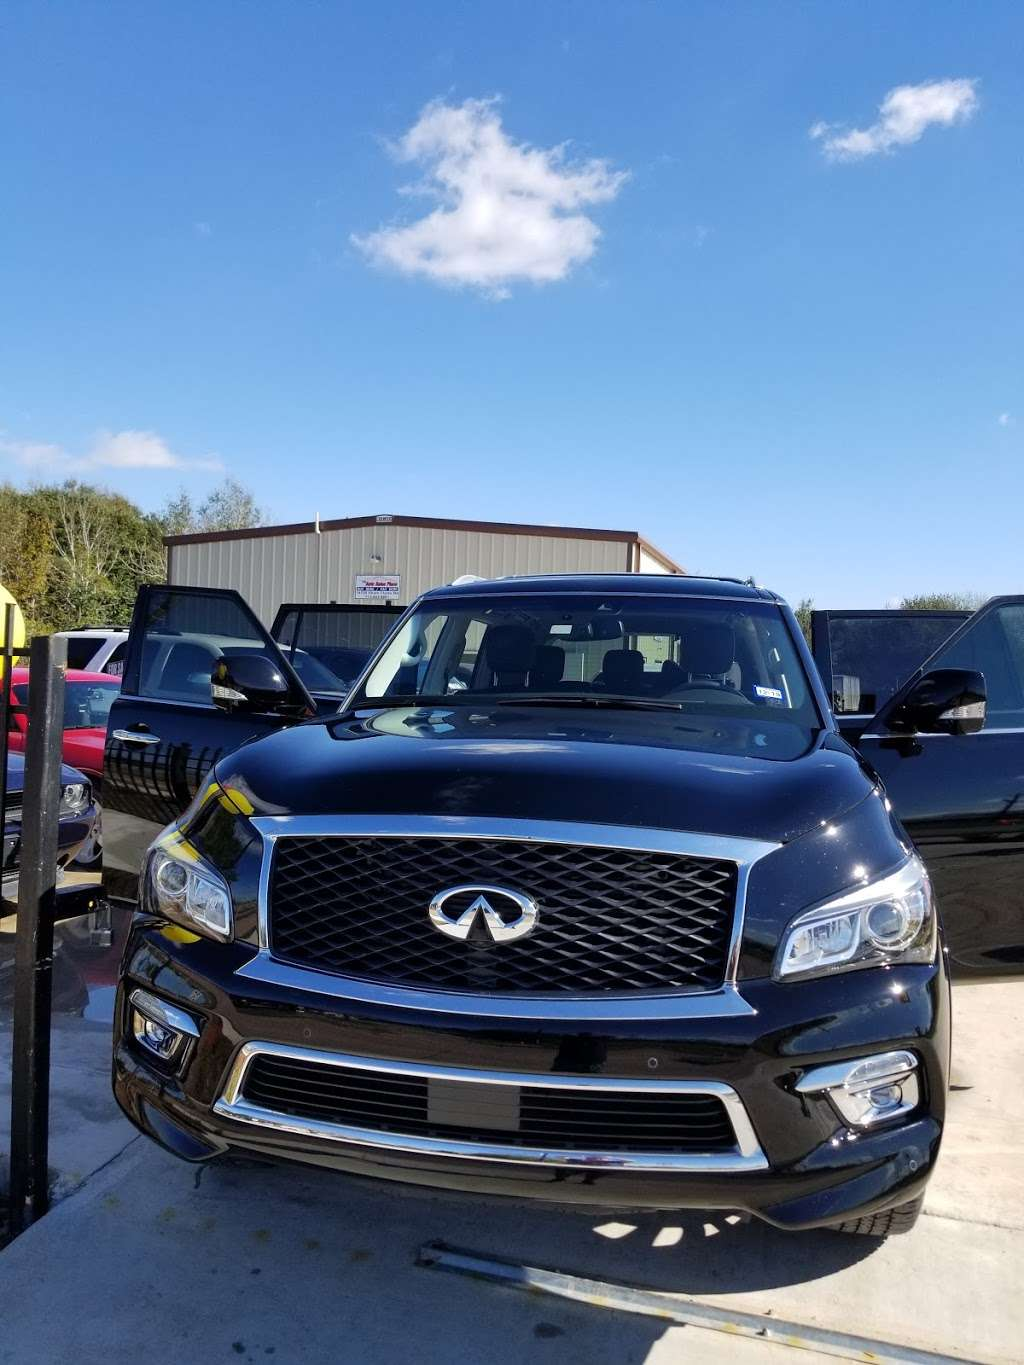 The Auto Sales Place and Hand Car Wash - car dealer  | Photo 9 of 10 | Address: 14129 Hiram Clarke Rd, Houston, TX 77045, USA | Phone: (832) 275-9116